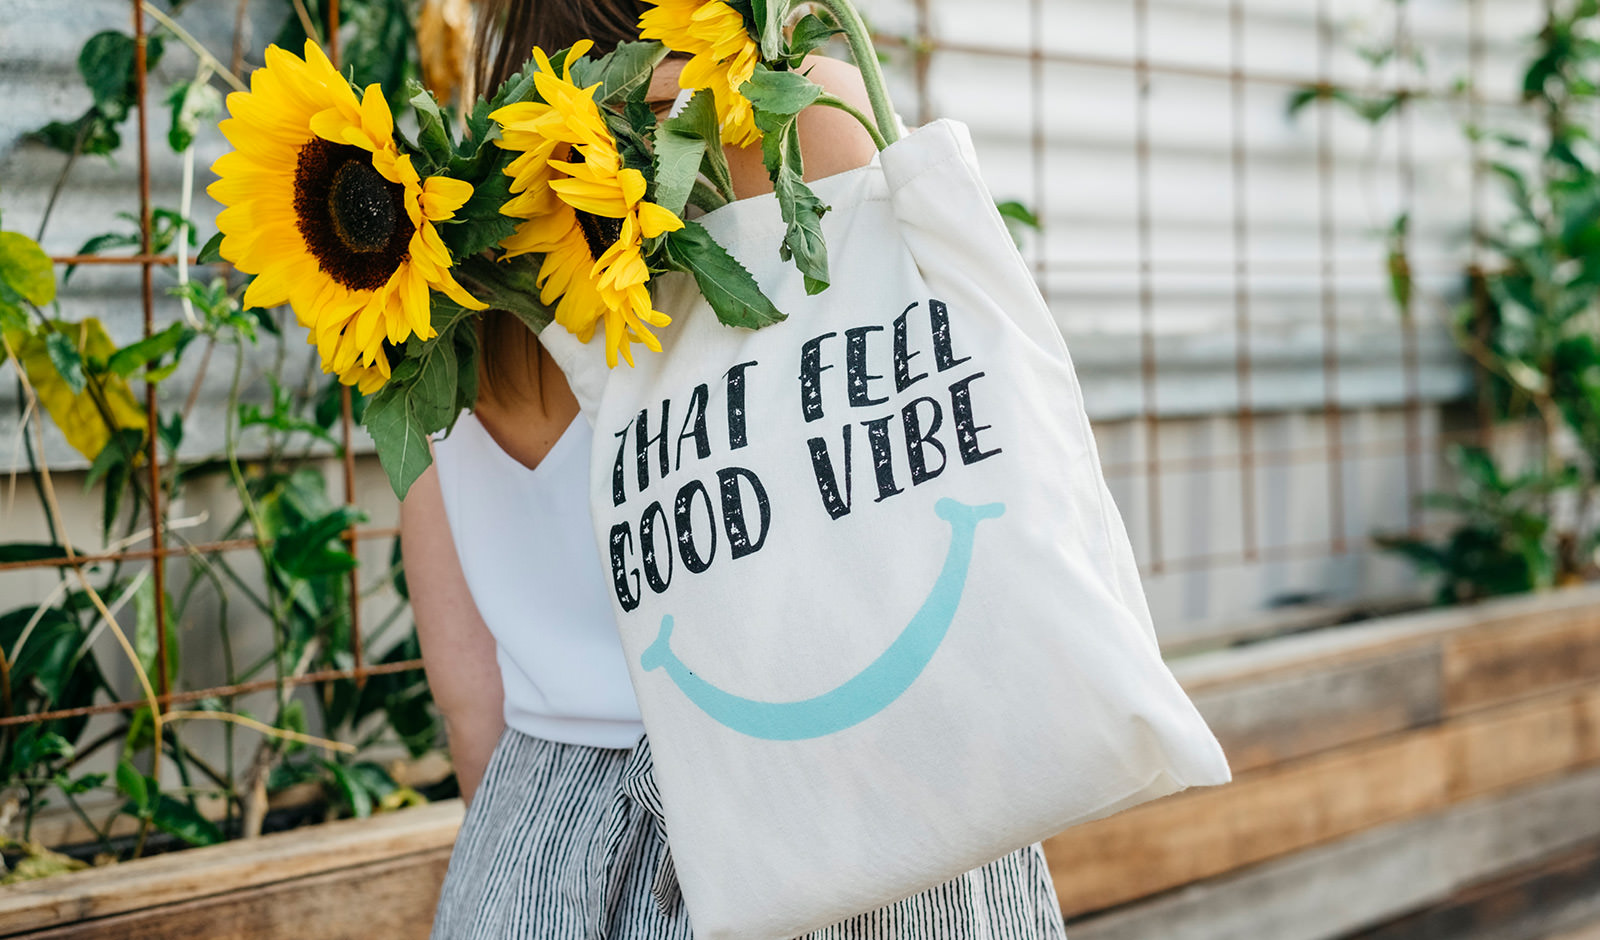 An image of a girl carrying a tote bag filled with sunflowers